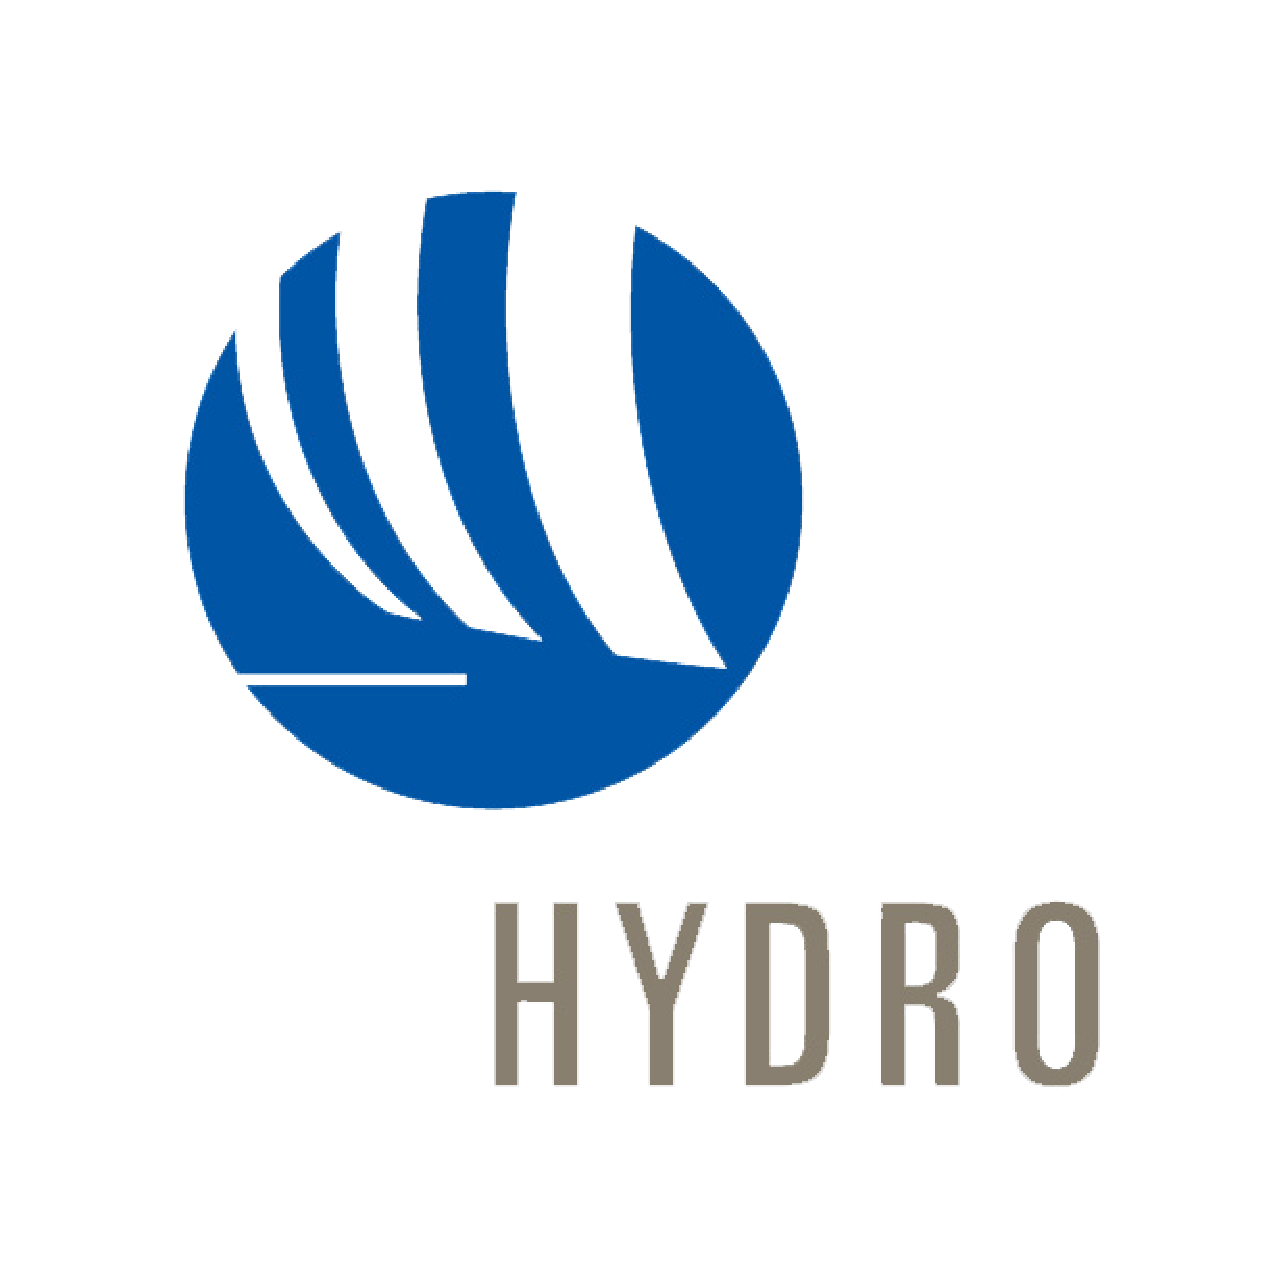 hydro_logo_blue.svg